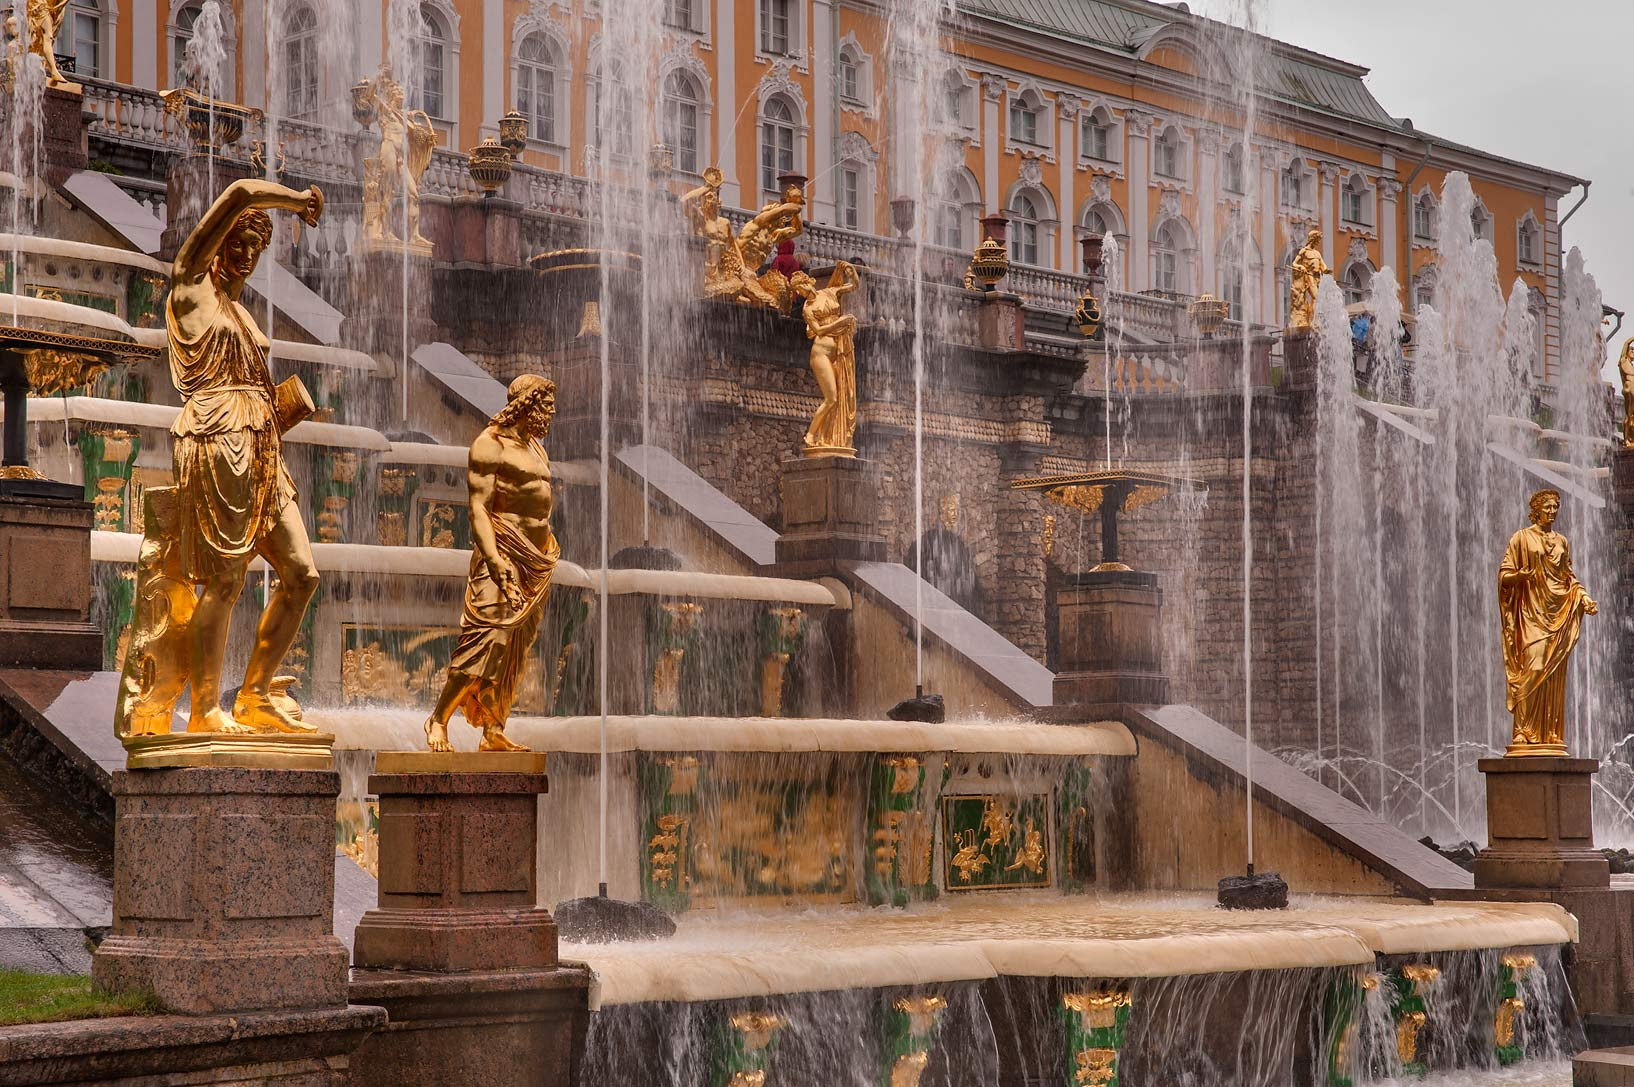 Sireny Fountains of Grand Cascade in Lower...a suburb of St.Petersburg. Russia